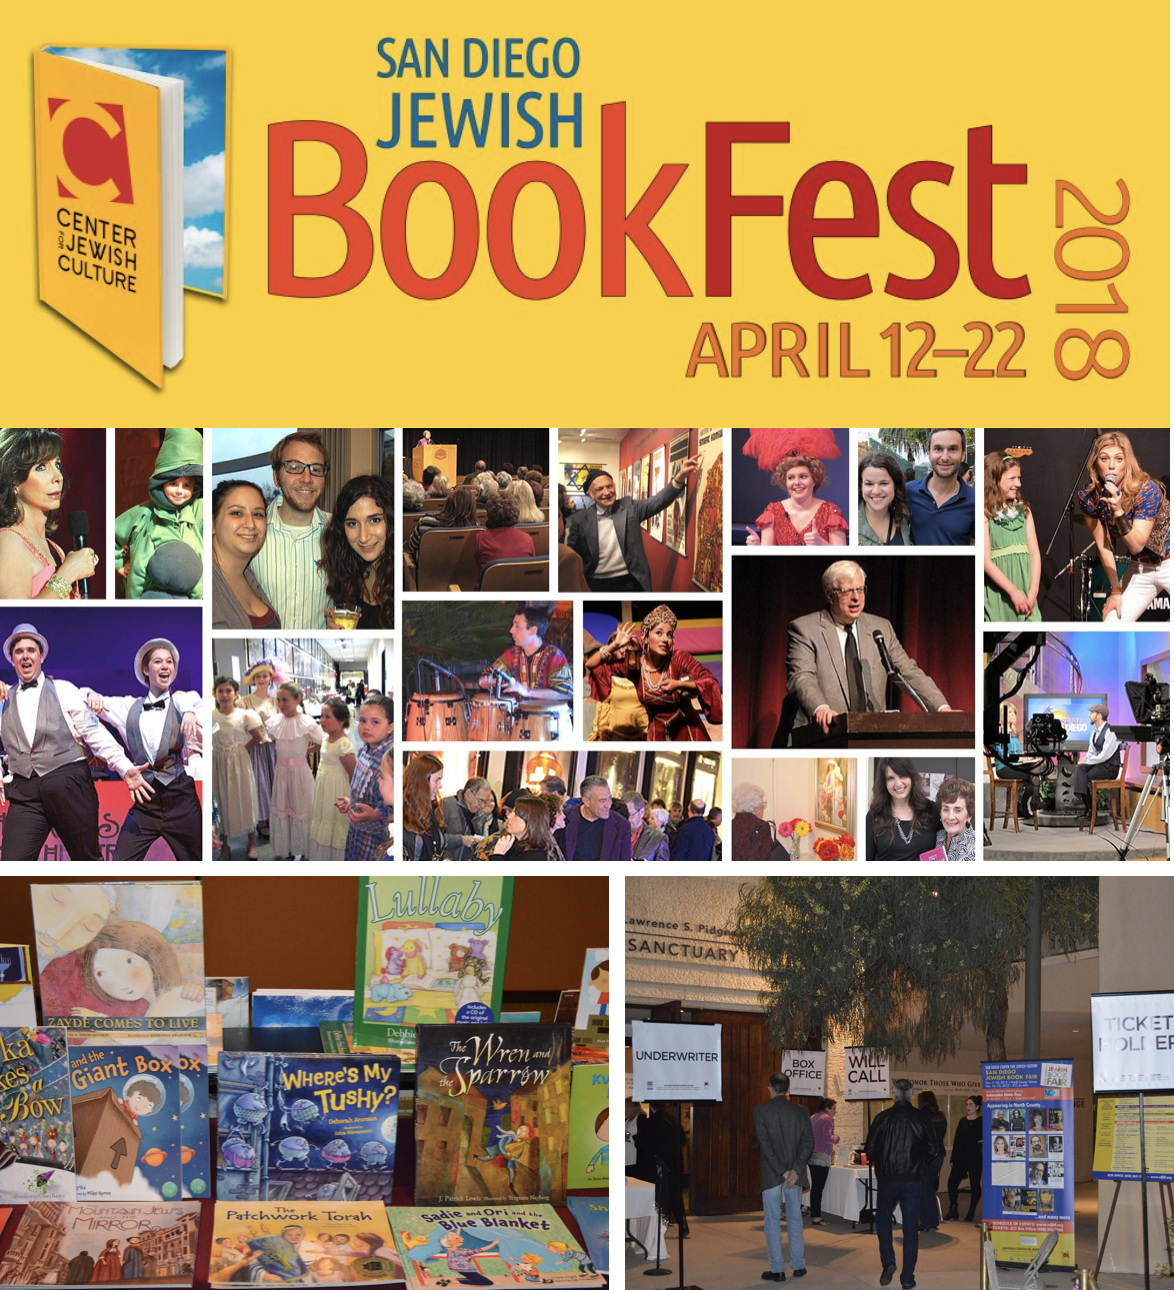 Don't Miss The San Diego Jewish Bookfest - April 12-22!